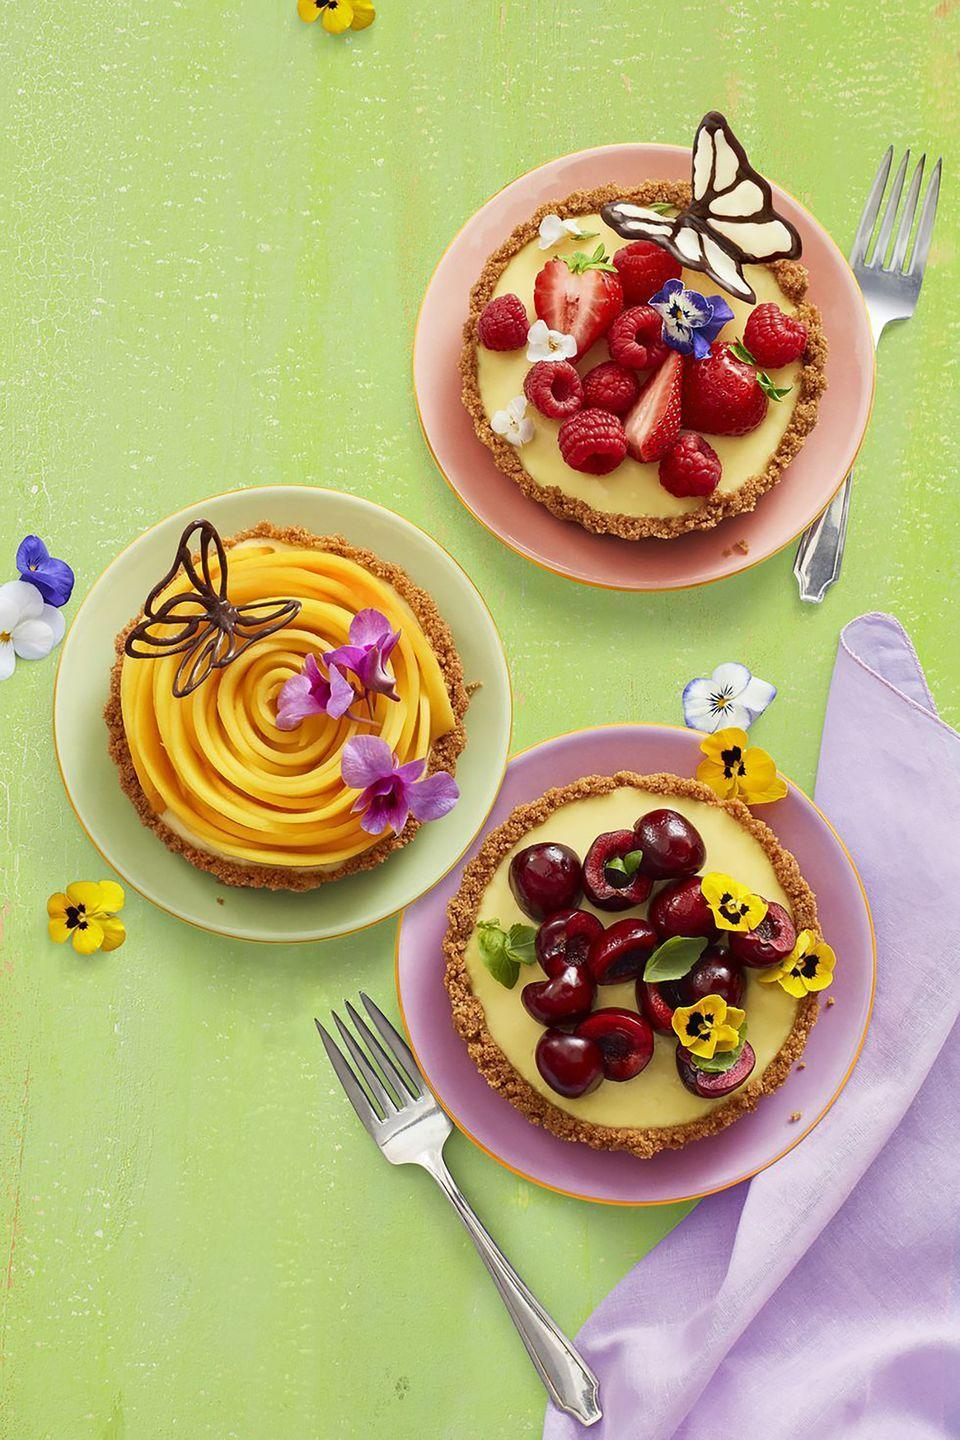 """<p>Hello, sweet spring mini desserts! These fruity lemon tarts are a great way to make a Mother's Day brunch spread Instagram-worthy. </p><p><a href=""""https://www.womansday.com/food-recipes/food-drinks/a19810477/no-bake-lemon-tarts-recipe/"""" rel=""""nofollow noopener"""" target=""""_blank"""" data-ylk=""""slk:Get the recipe for No-Bake Lemon Tarts."""" class=""""link rapid-noclick-resp""""><em>Get the recipe for No-Bake Lemon Tarts.</em></a> </p>"""